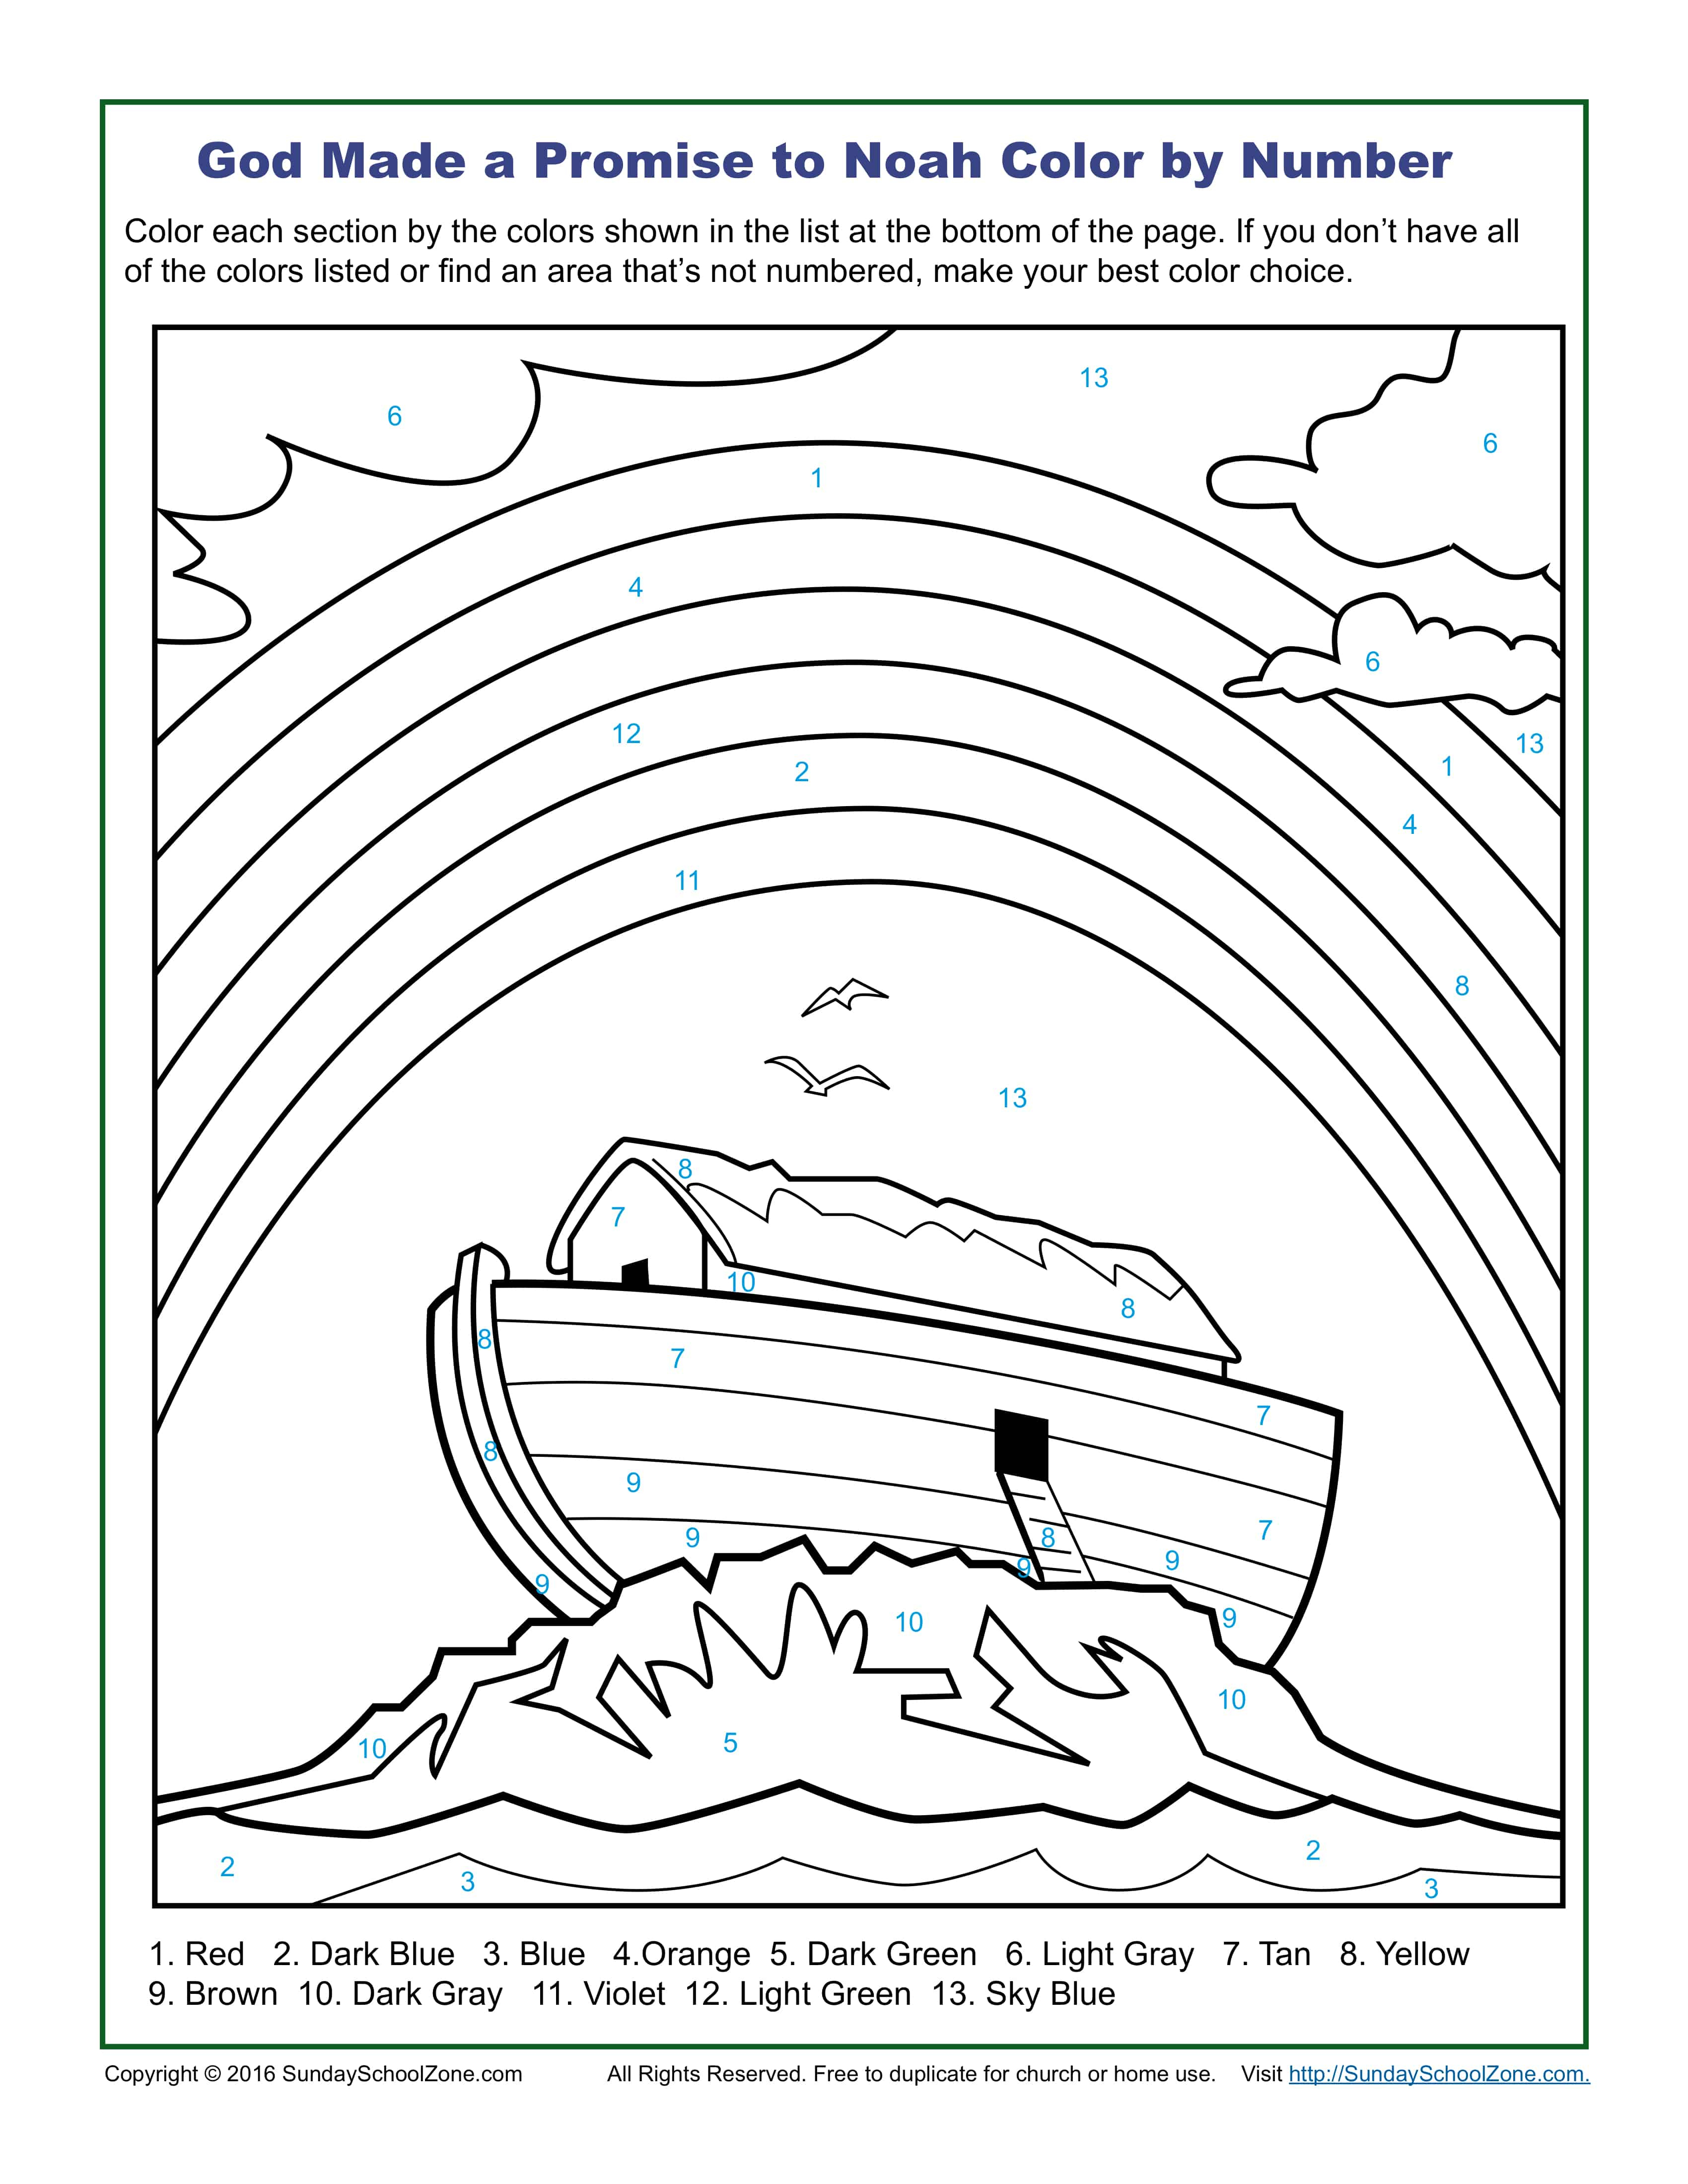 Number 6 Coloring Page Color Number Bible Coloring Pages On Sunday School Zone